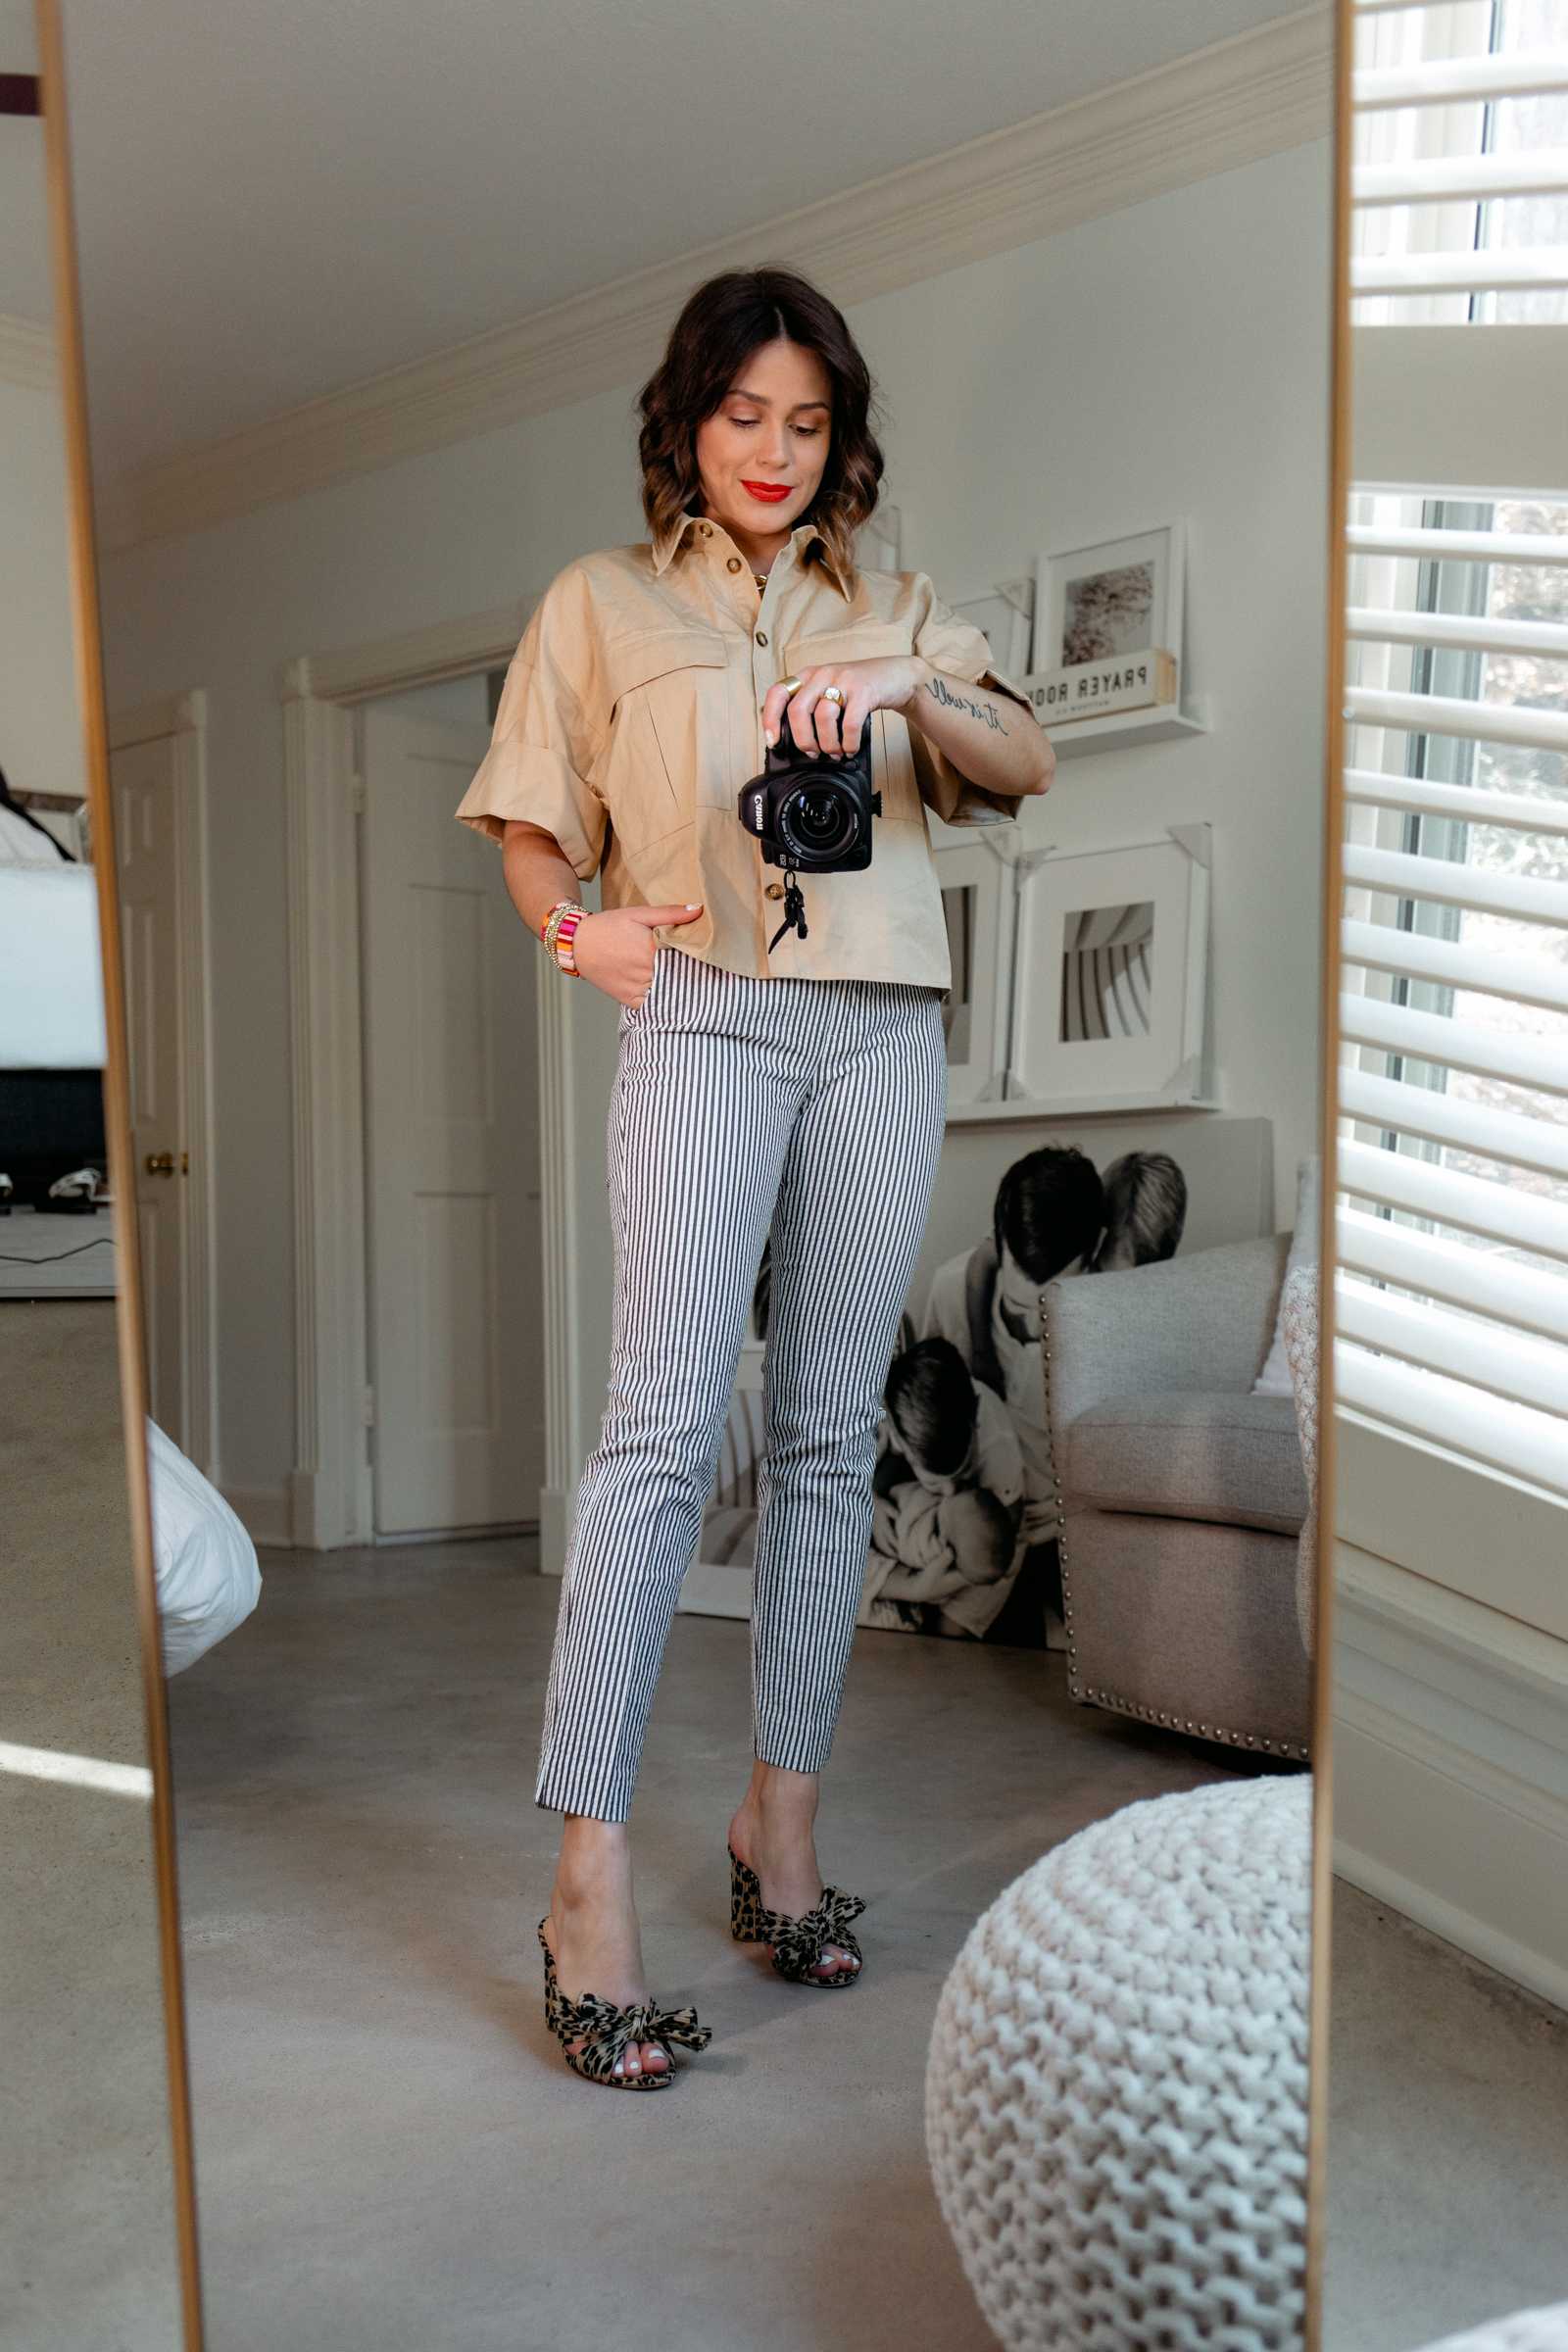 Elly brown wears striped crop pants with leopard heels and a crop top from Zara